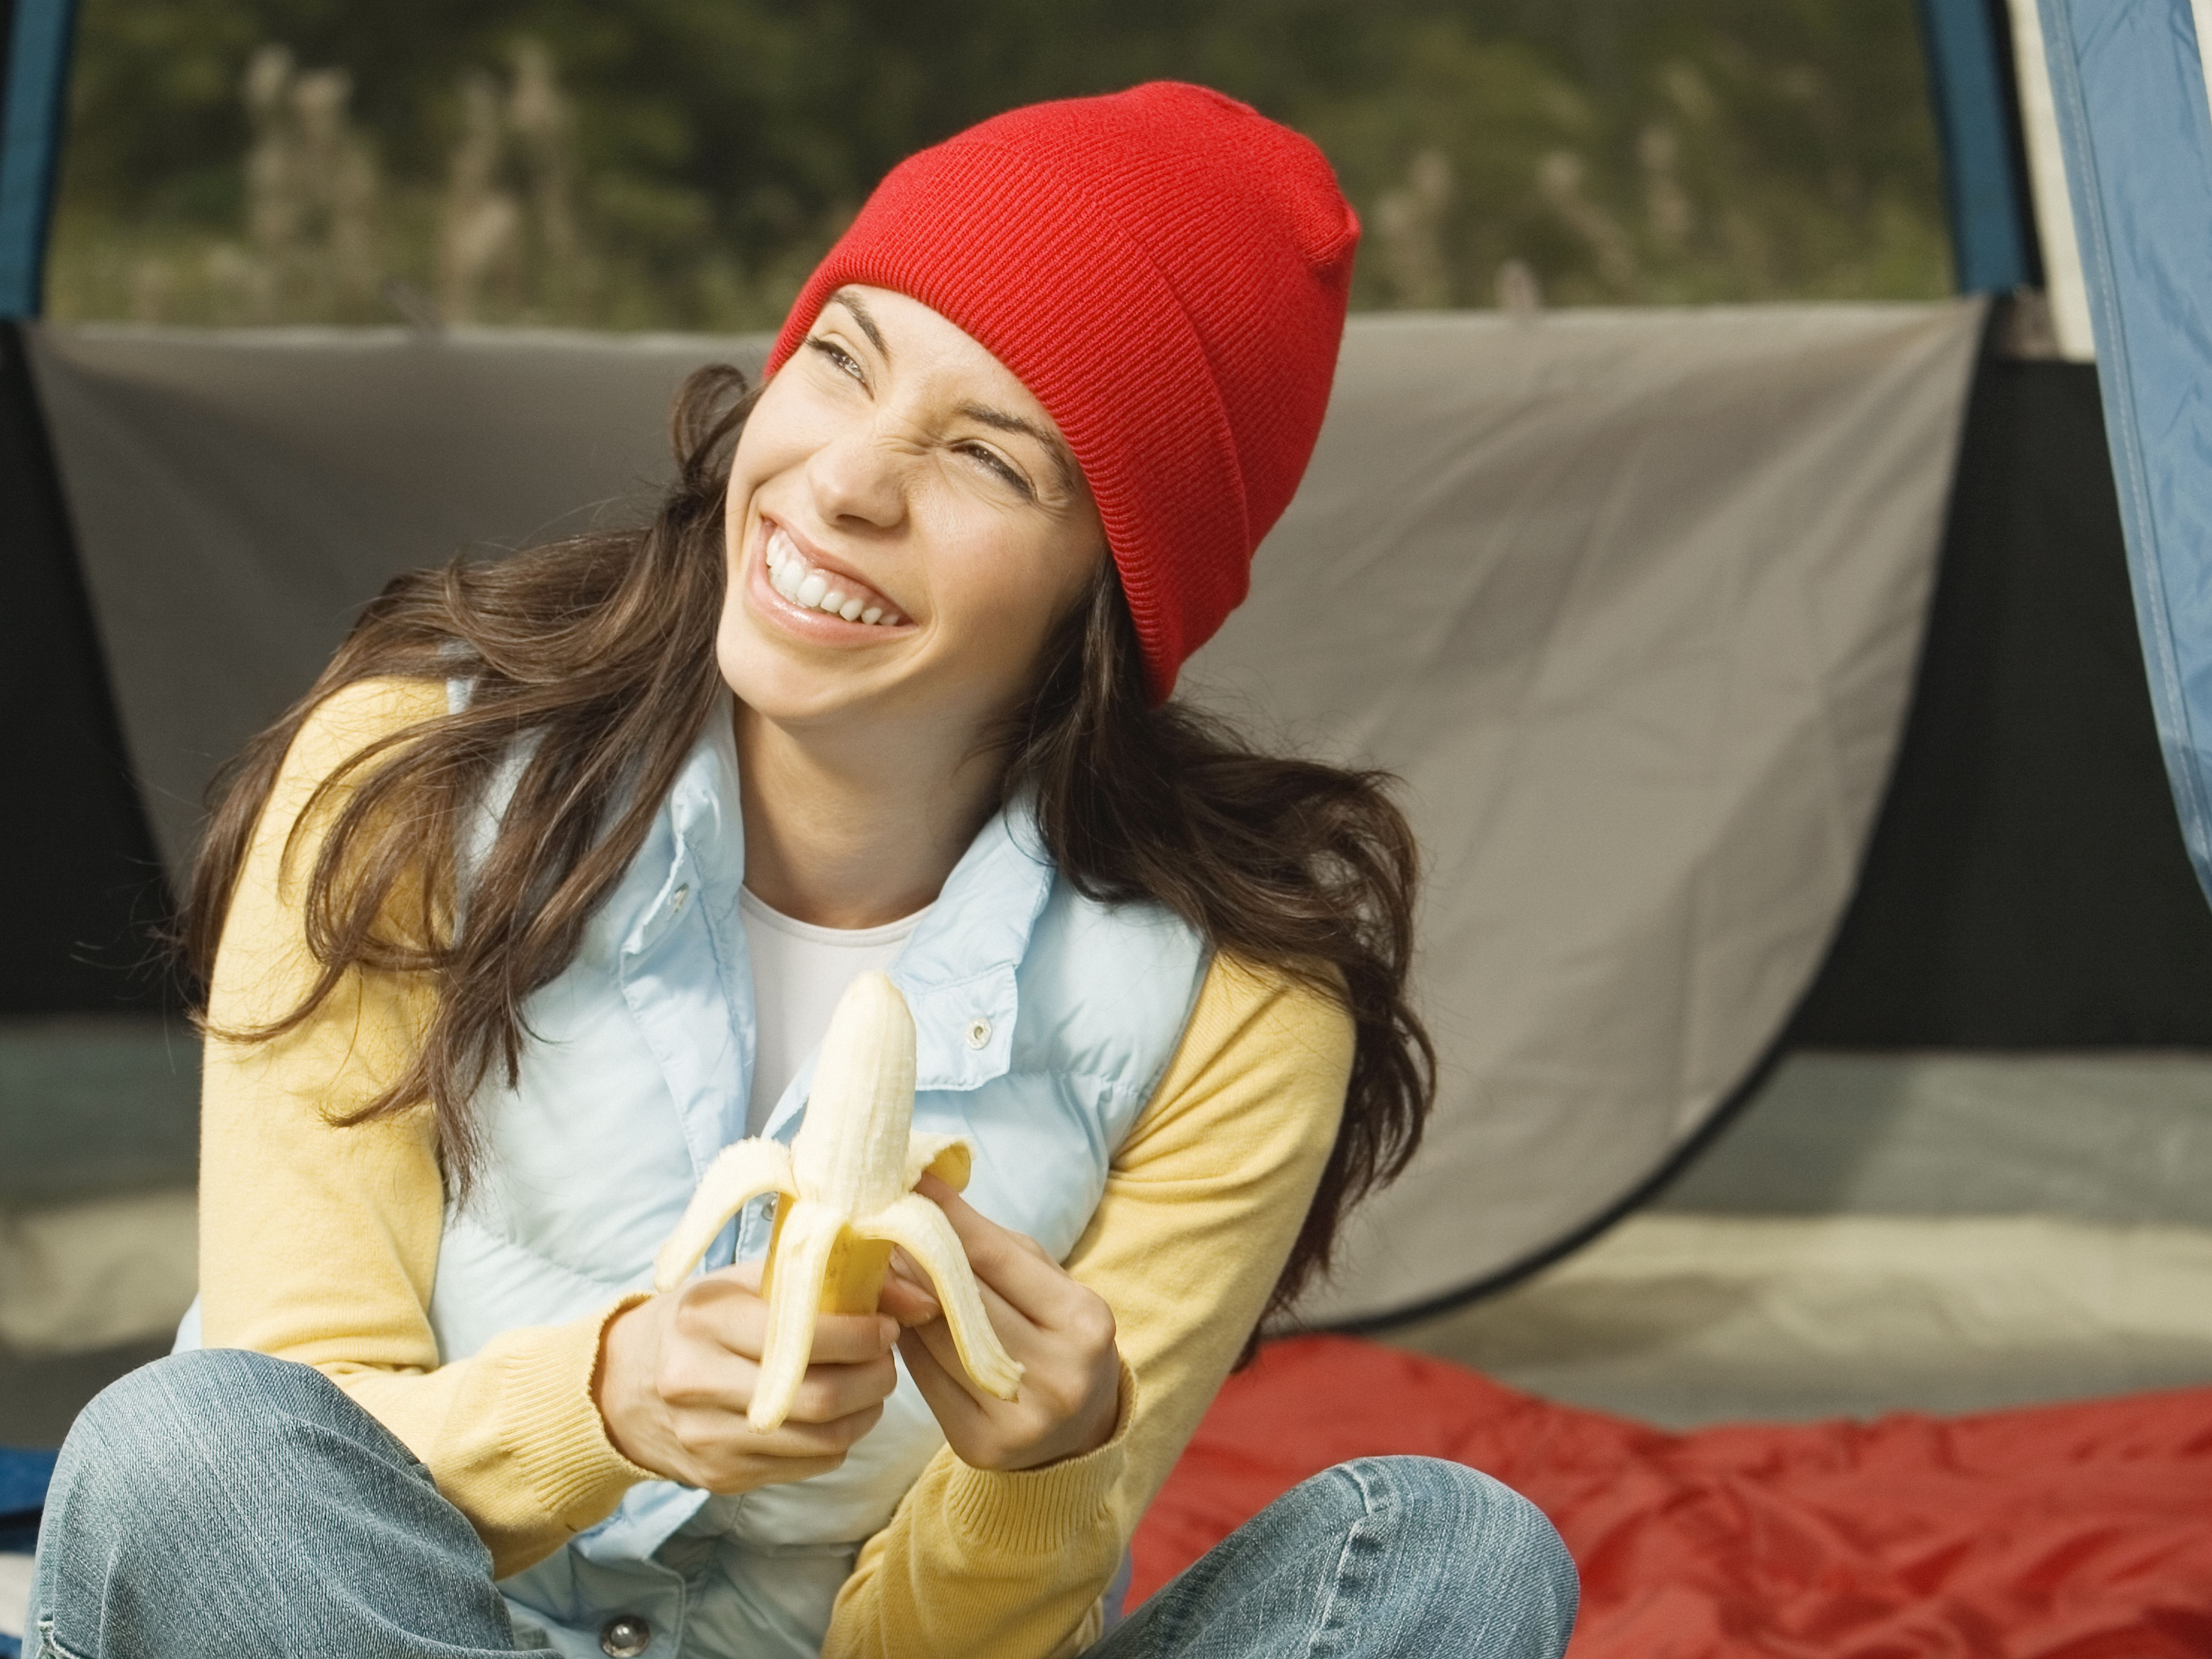 Does Eating Bananas Improve Your Mood?